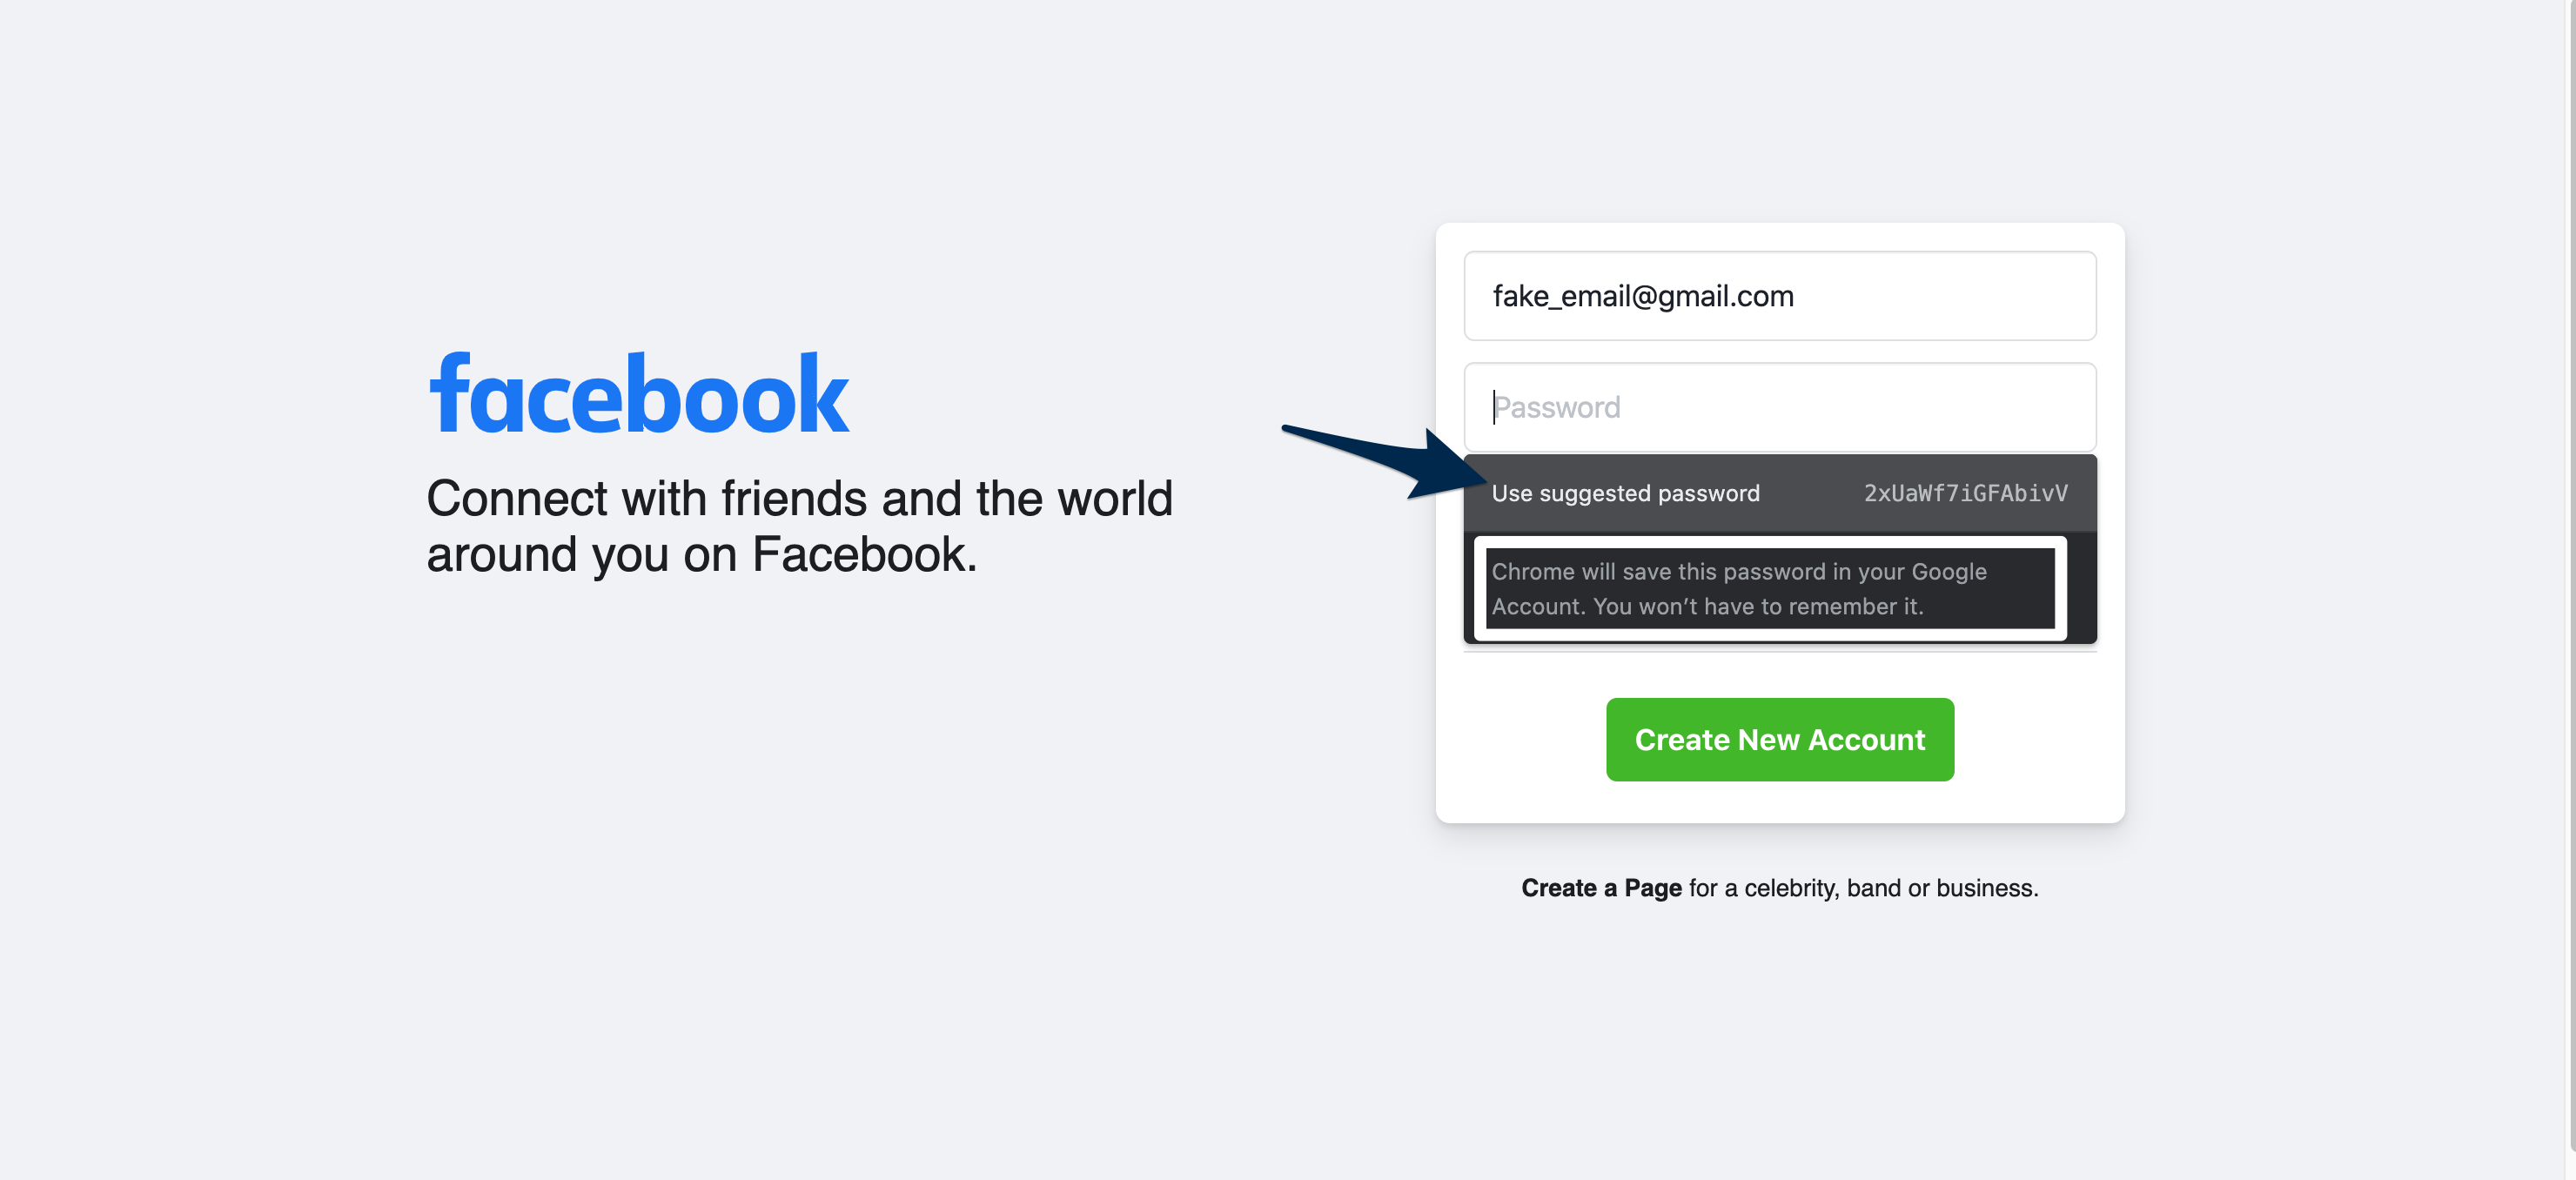 View of the facebook sign in screen. An arrow points at the dropdown menu underneath the password field with the 'Use suggested password' option. Outlined, is text that reads 'Google will save in your Google account.You won't have to remember it.